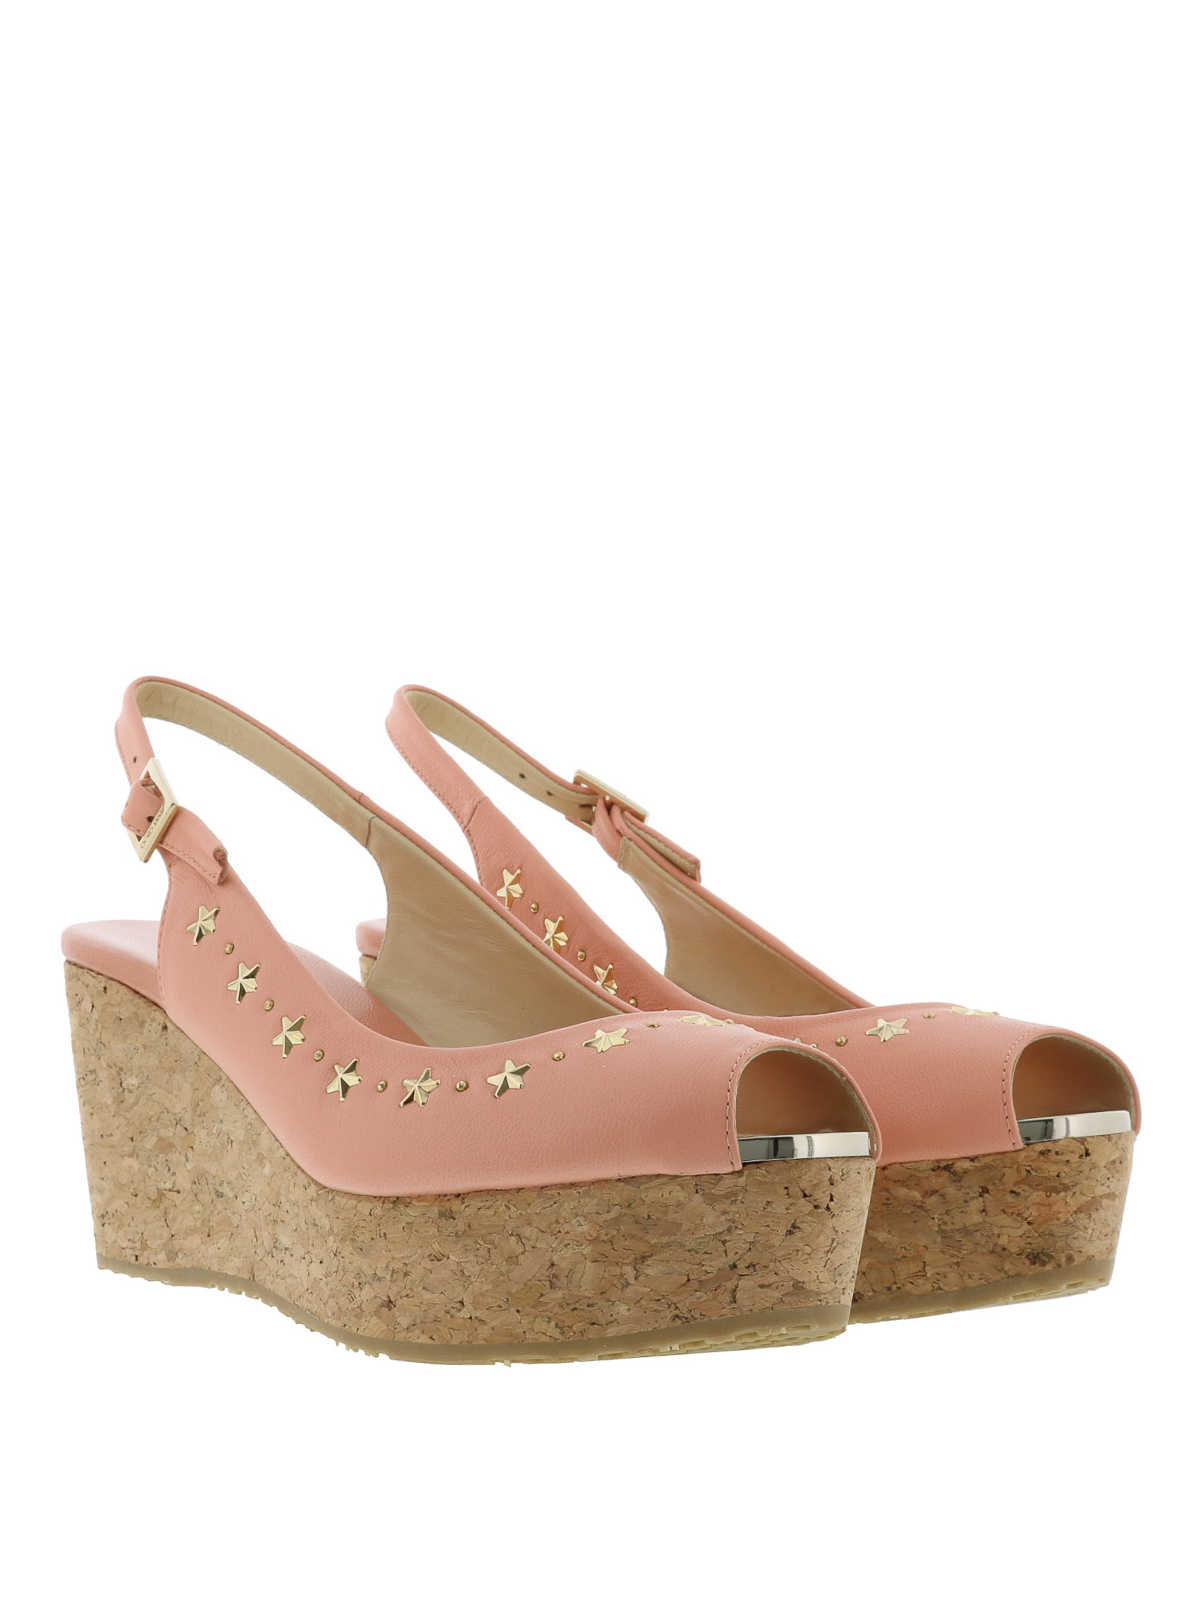 bdc4cab3f60 Jimmy Choo - Praise cork and leather wedges - sandals - PRAISE NAS ...